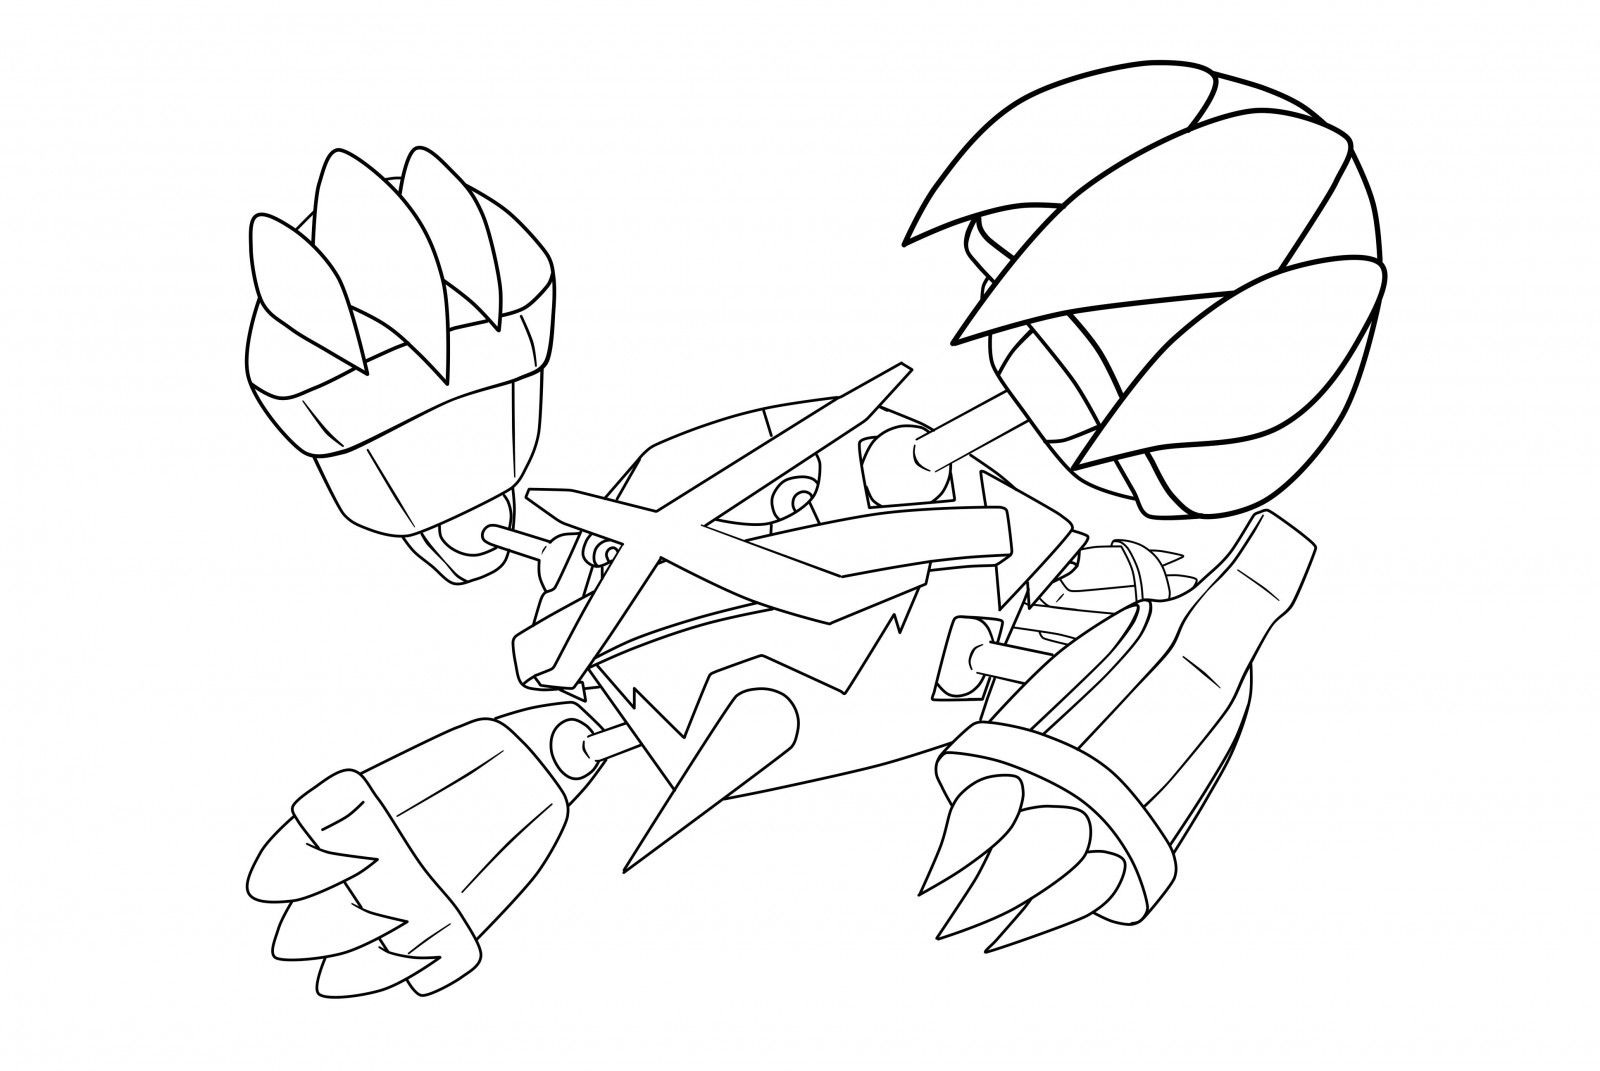 legendary pokemon coloring pages mega rayquaza - Legendary Pokemon Coloring Pages